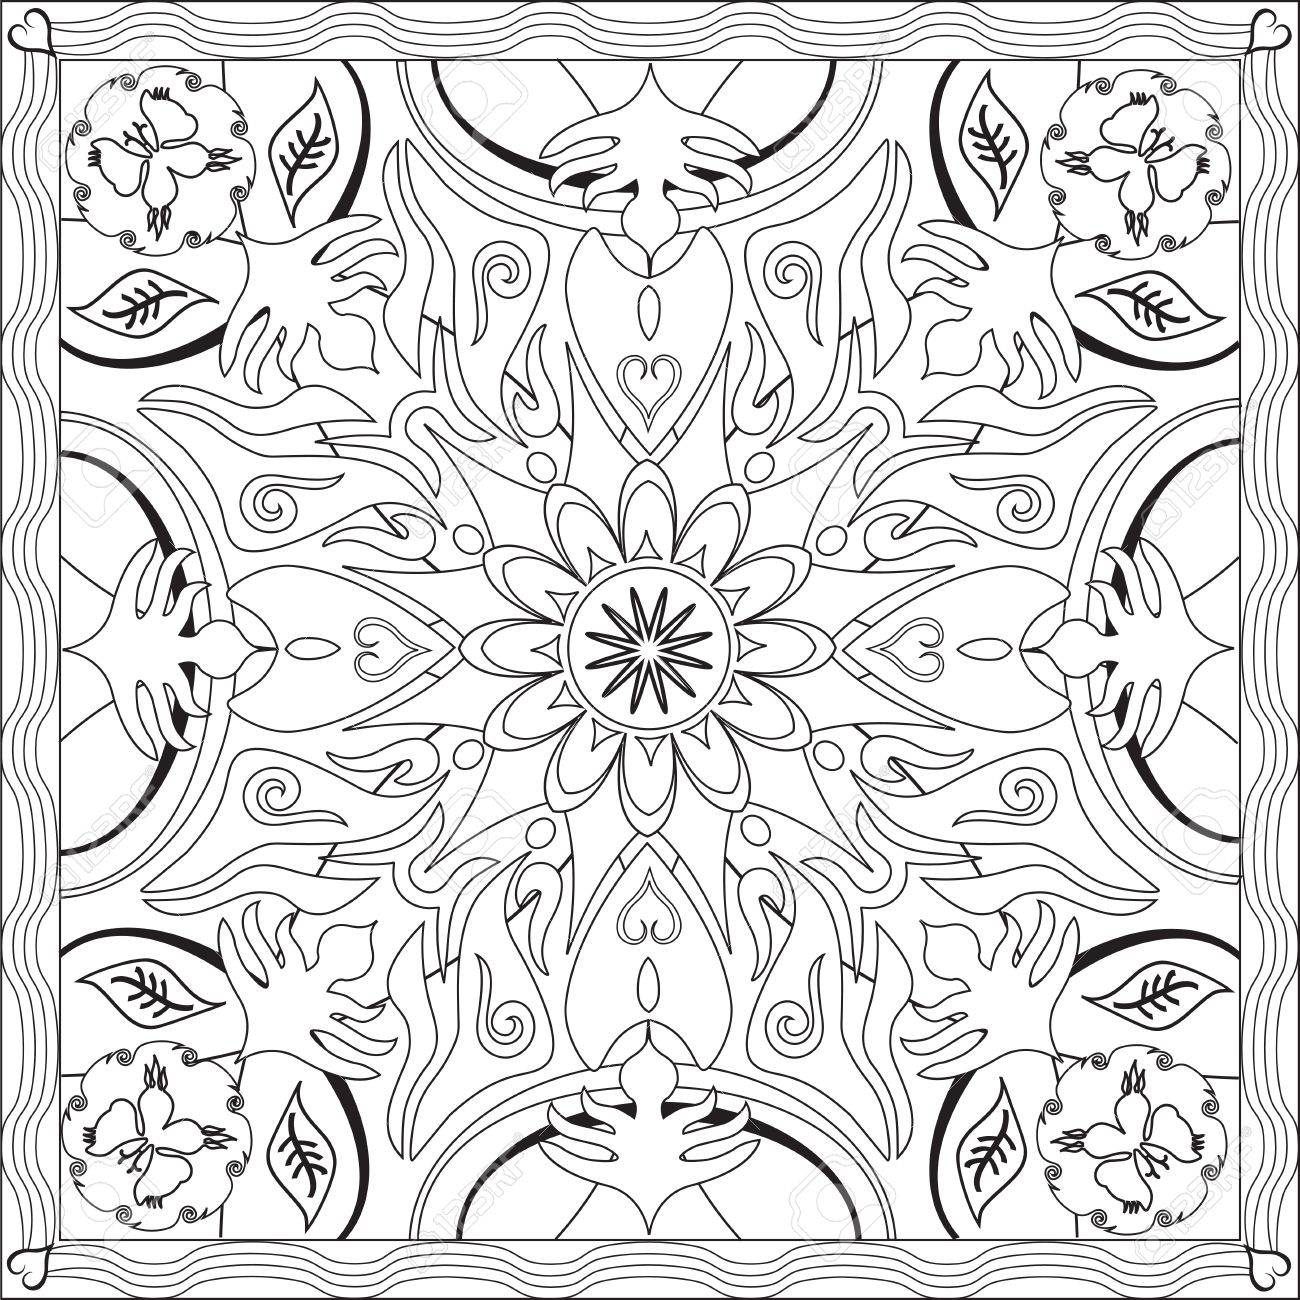 Page Coloring Book For Adults Square Format Flower Geometric Design Vector Illustration Stock